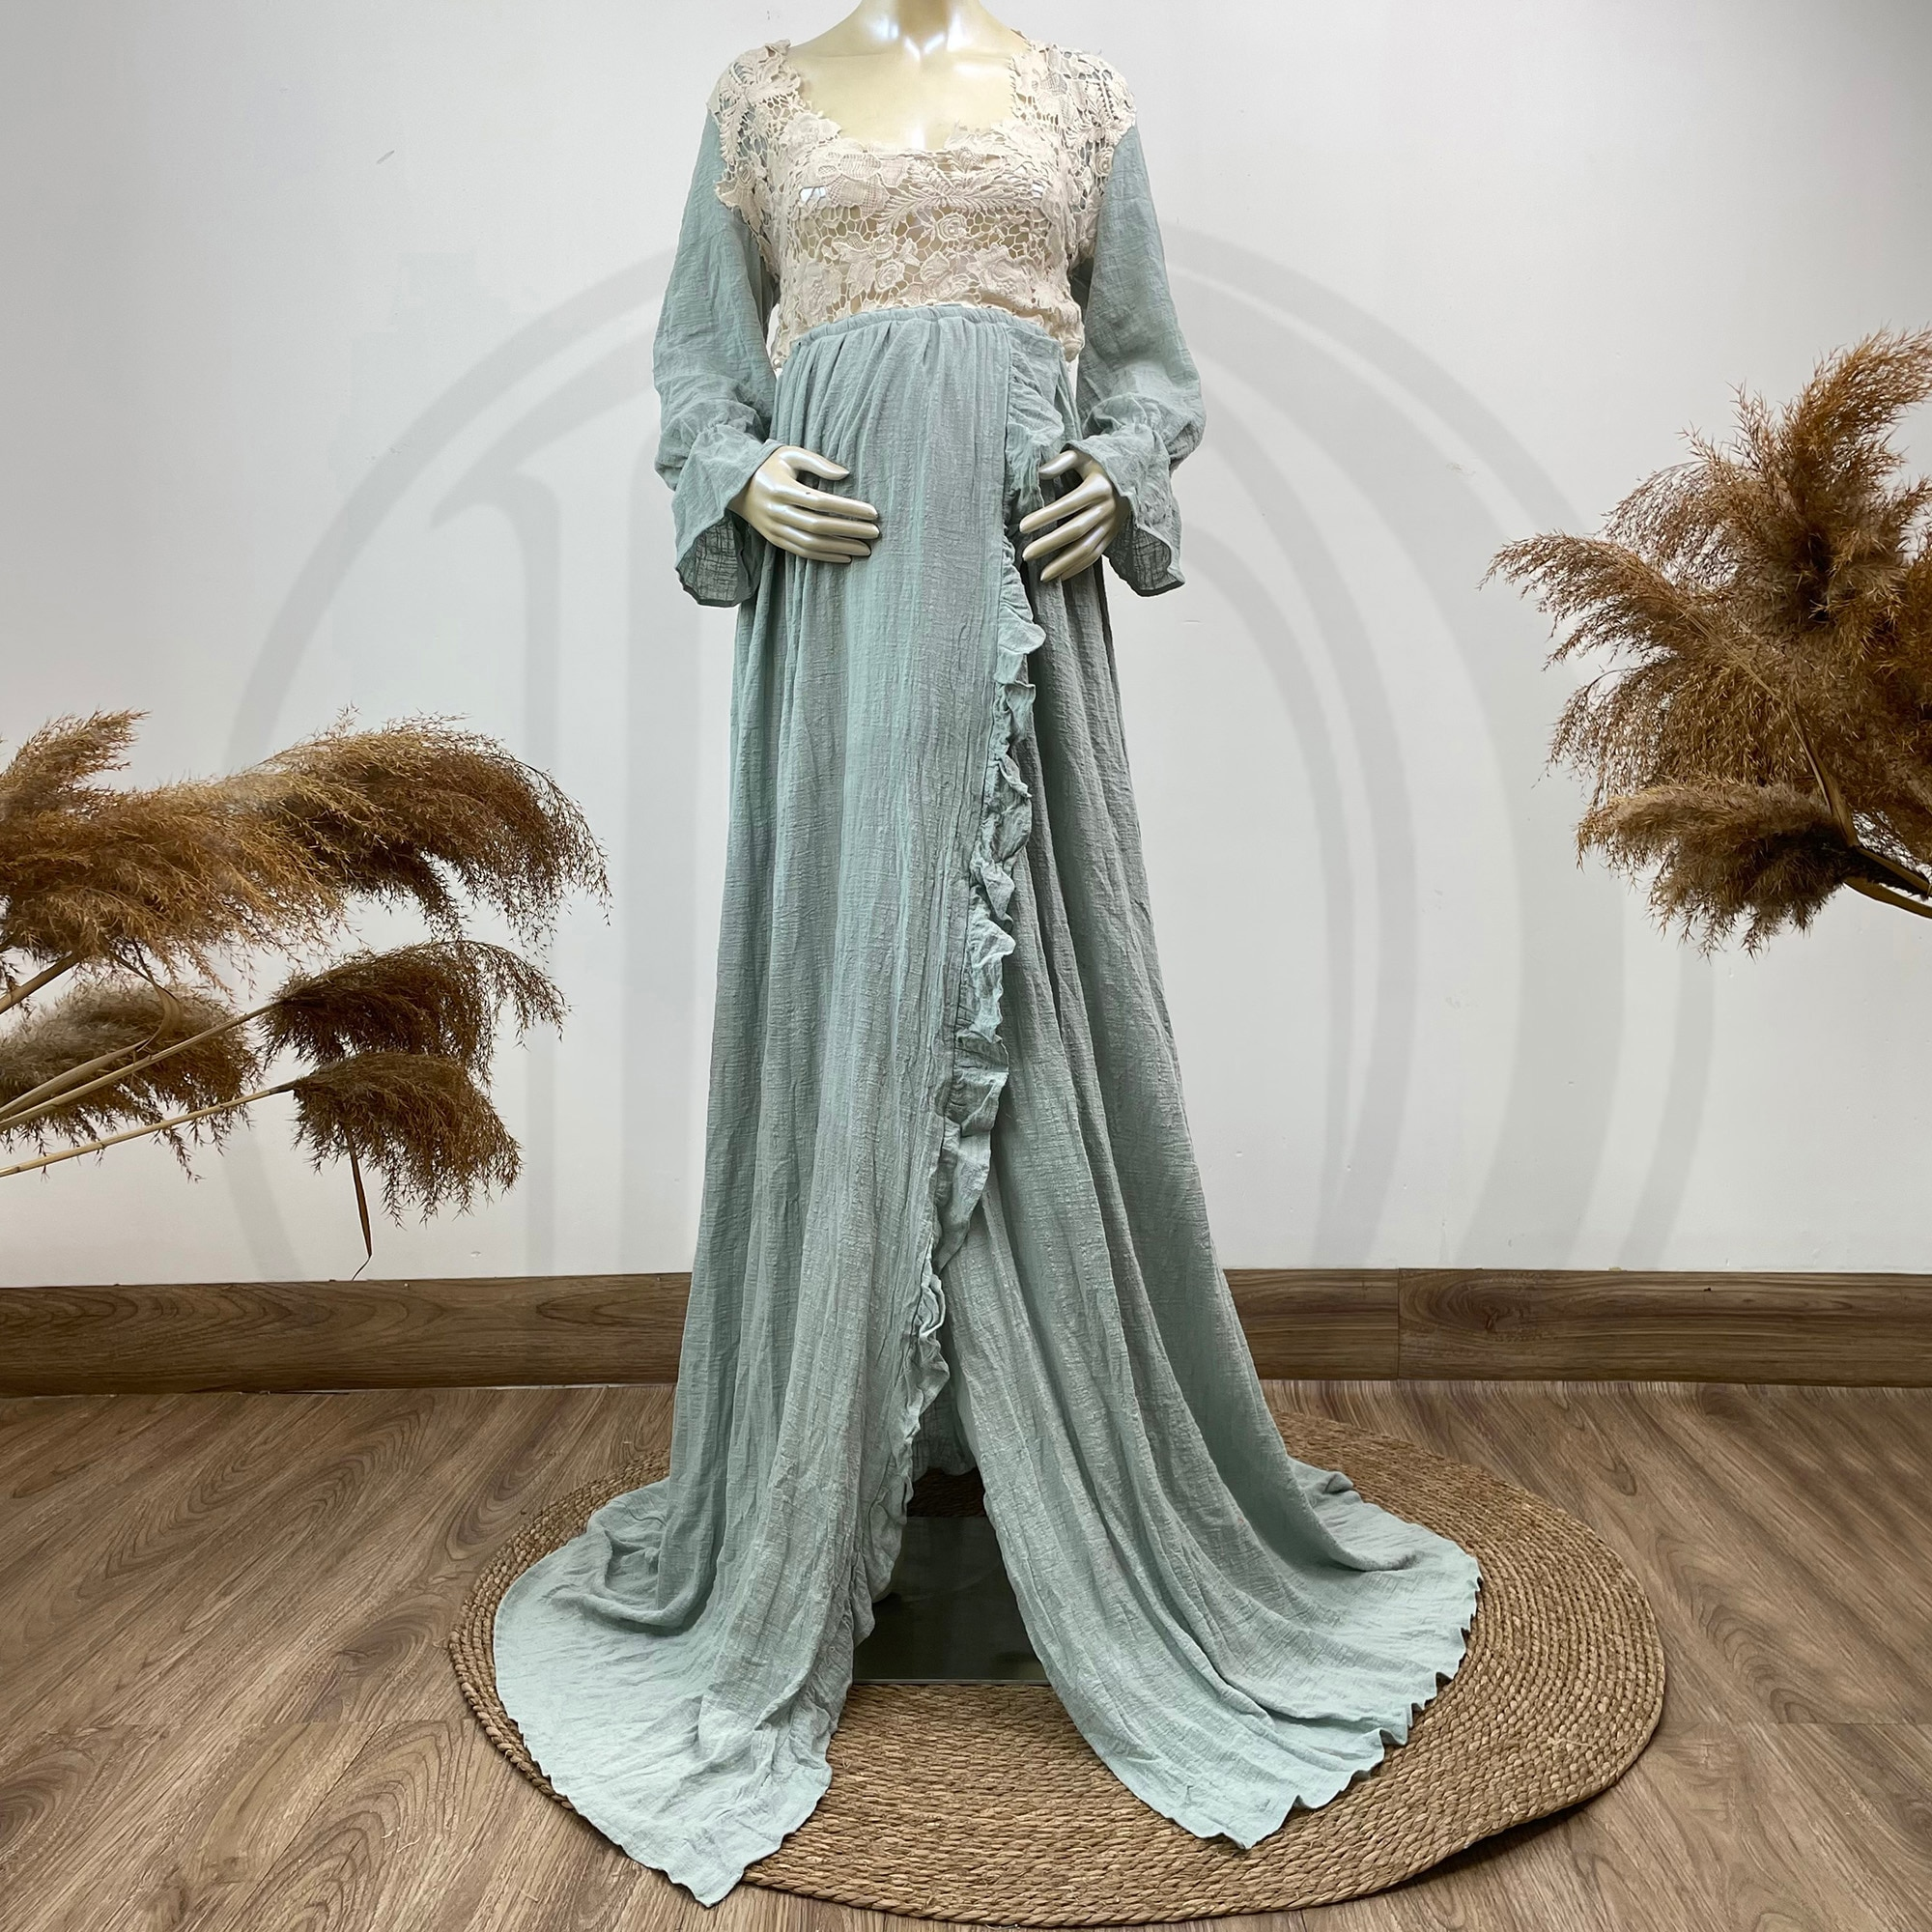 Photo Shoot Props Maxi Cotton Kaftan Full Sleeves Robe Maternity Dress Evening Party Costume for Women Photography Accessories